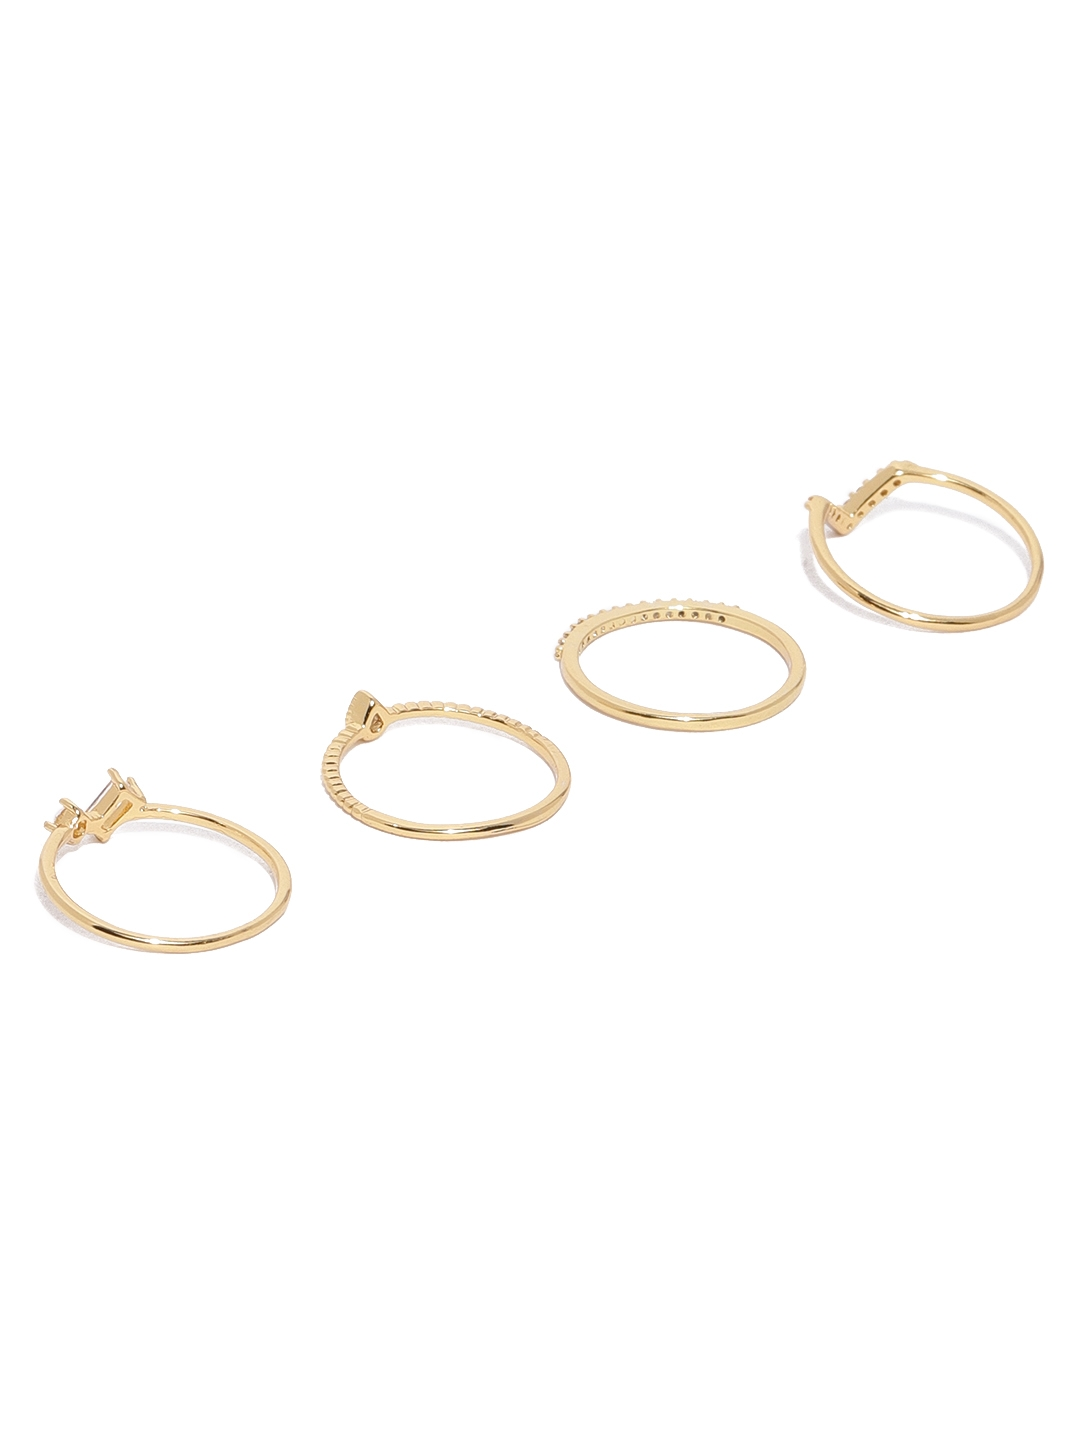 84a5cfd33 Buy Accessorize Women Set Of 4 Gold Plated CZ Studded Finger Rings ...